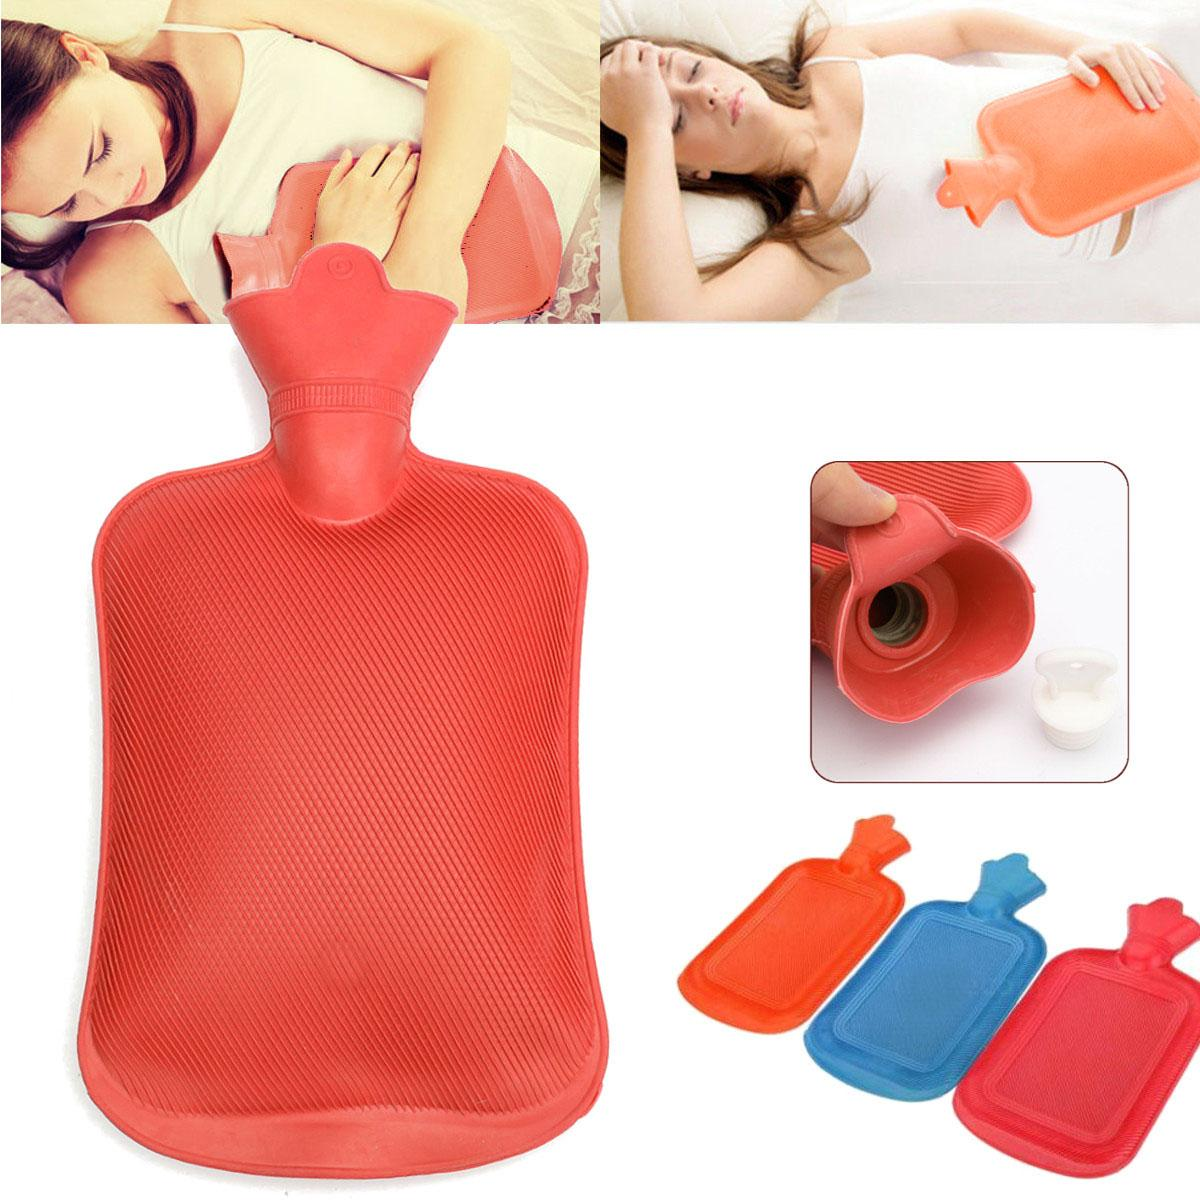 Hot Water Bottle 2.2L for Hot or Cold Compress image on snachetto.com